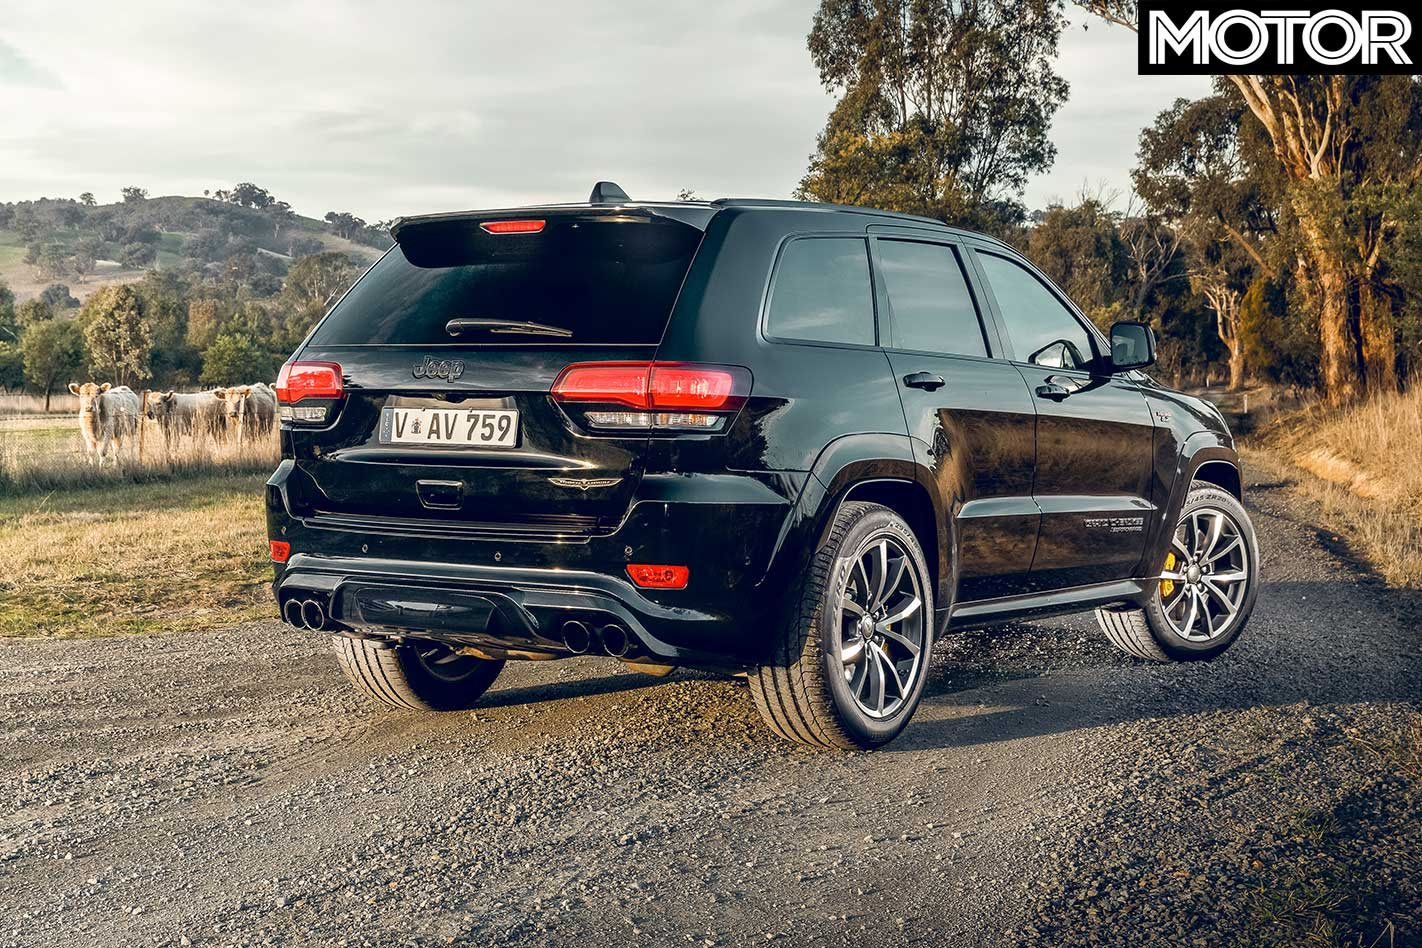 2018 Jeep Grand Cherokee Trackhawk feature performance review